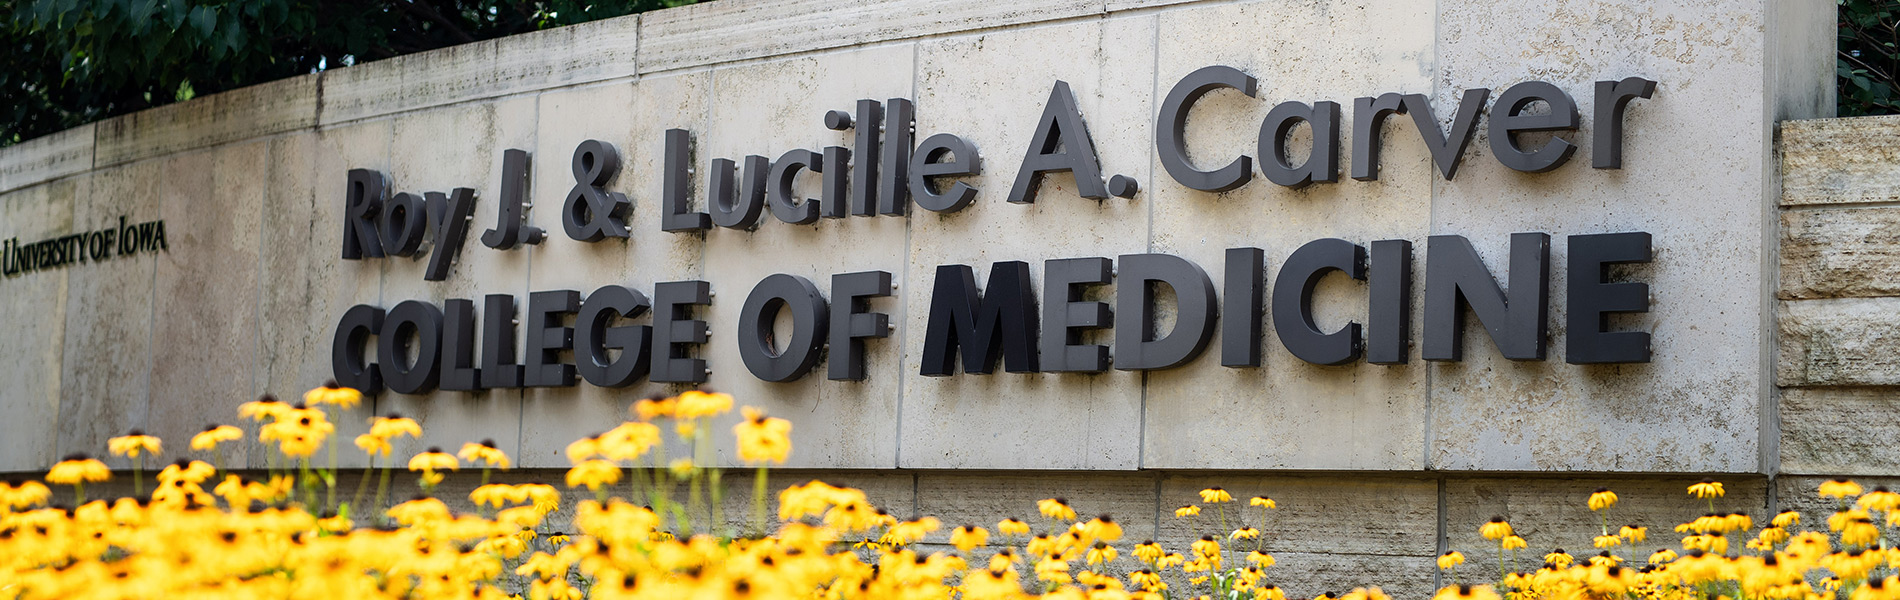 Monument sign for Carver College of Medicine